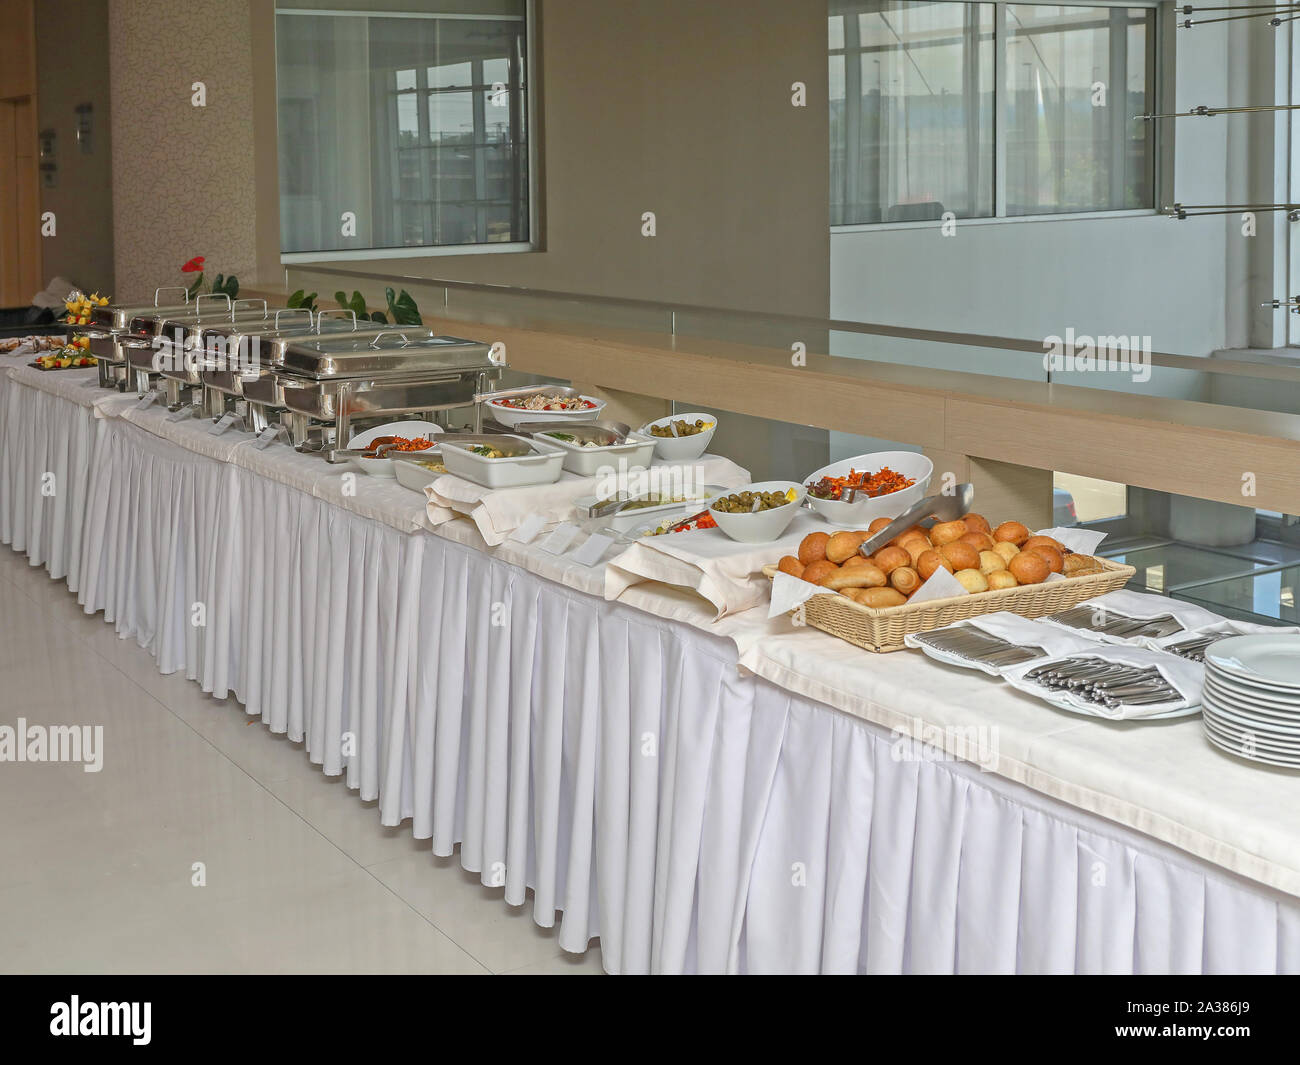 Picture of: Served Food At Big Long Buffet Table Stock Photo Alamy